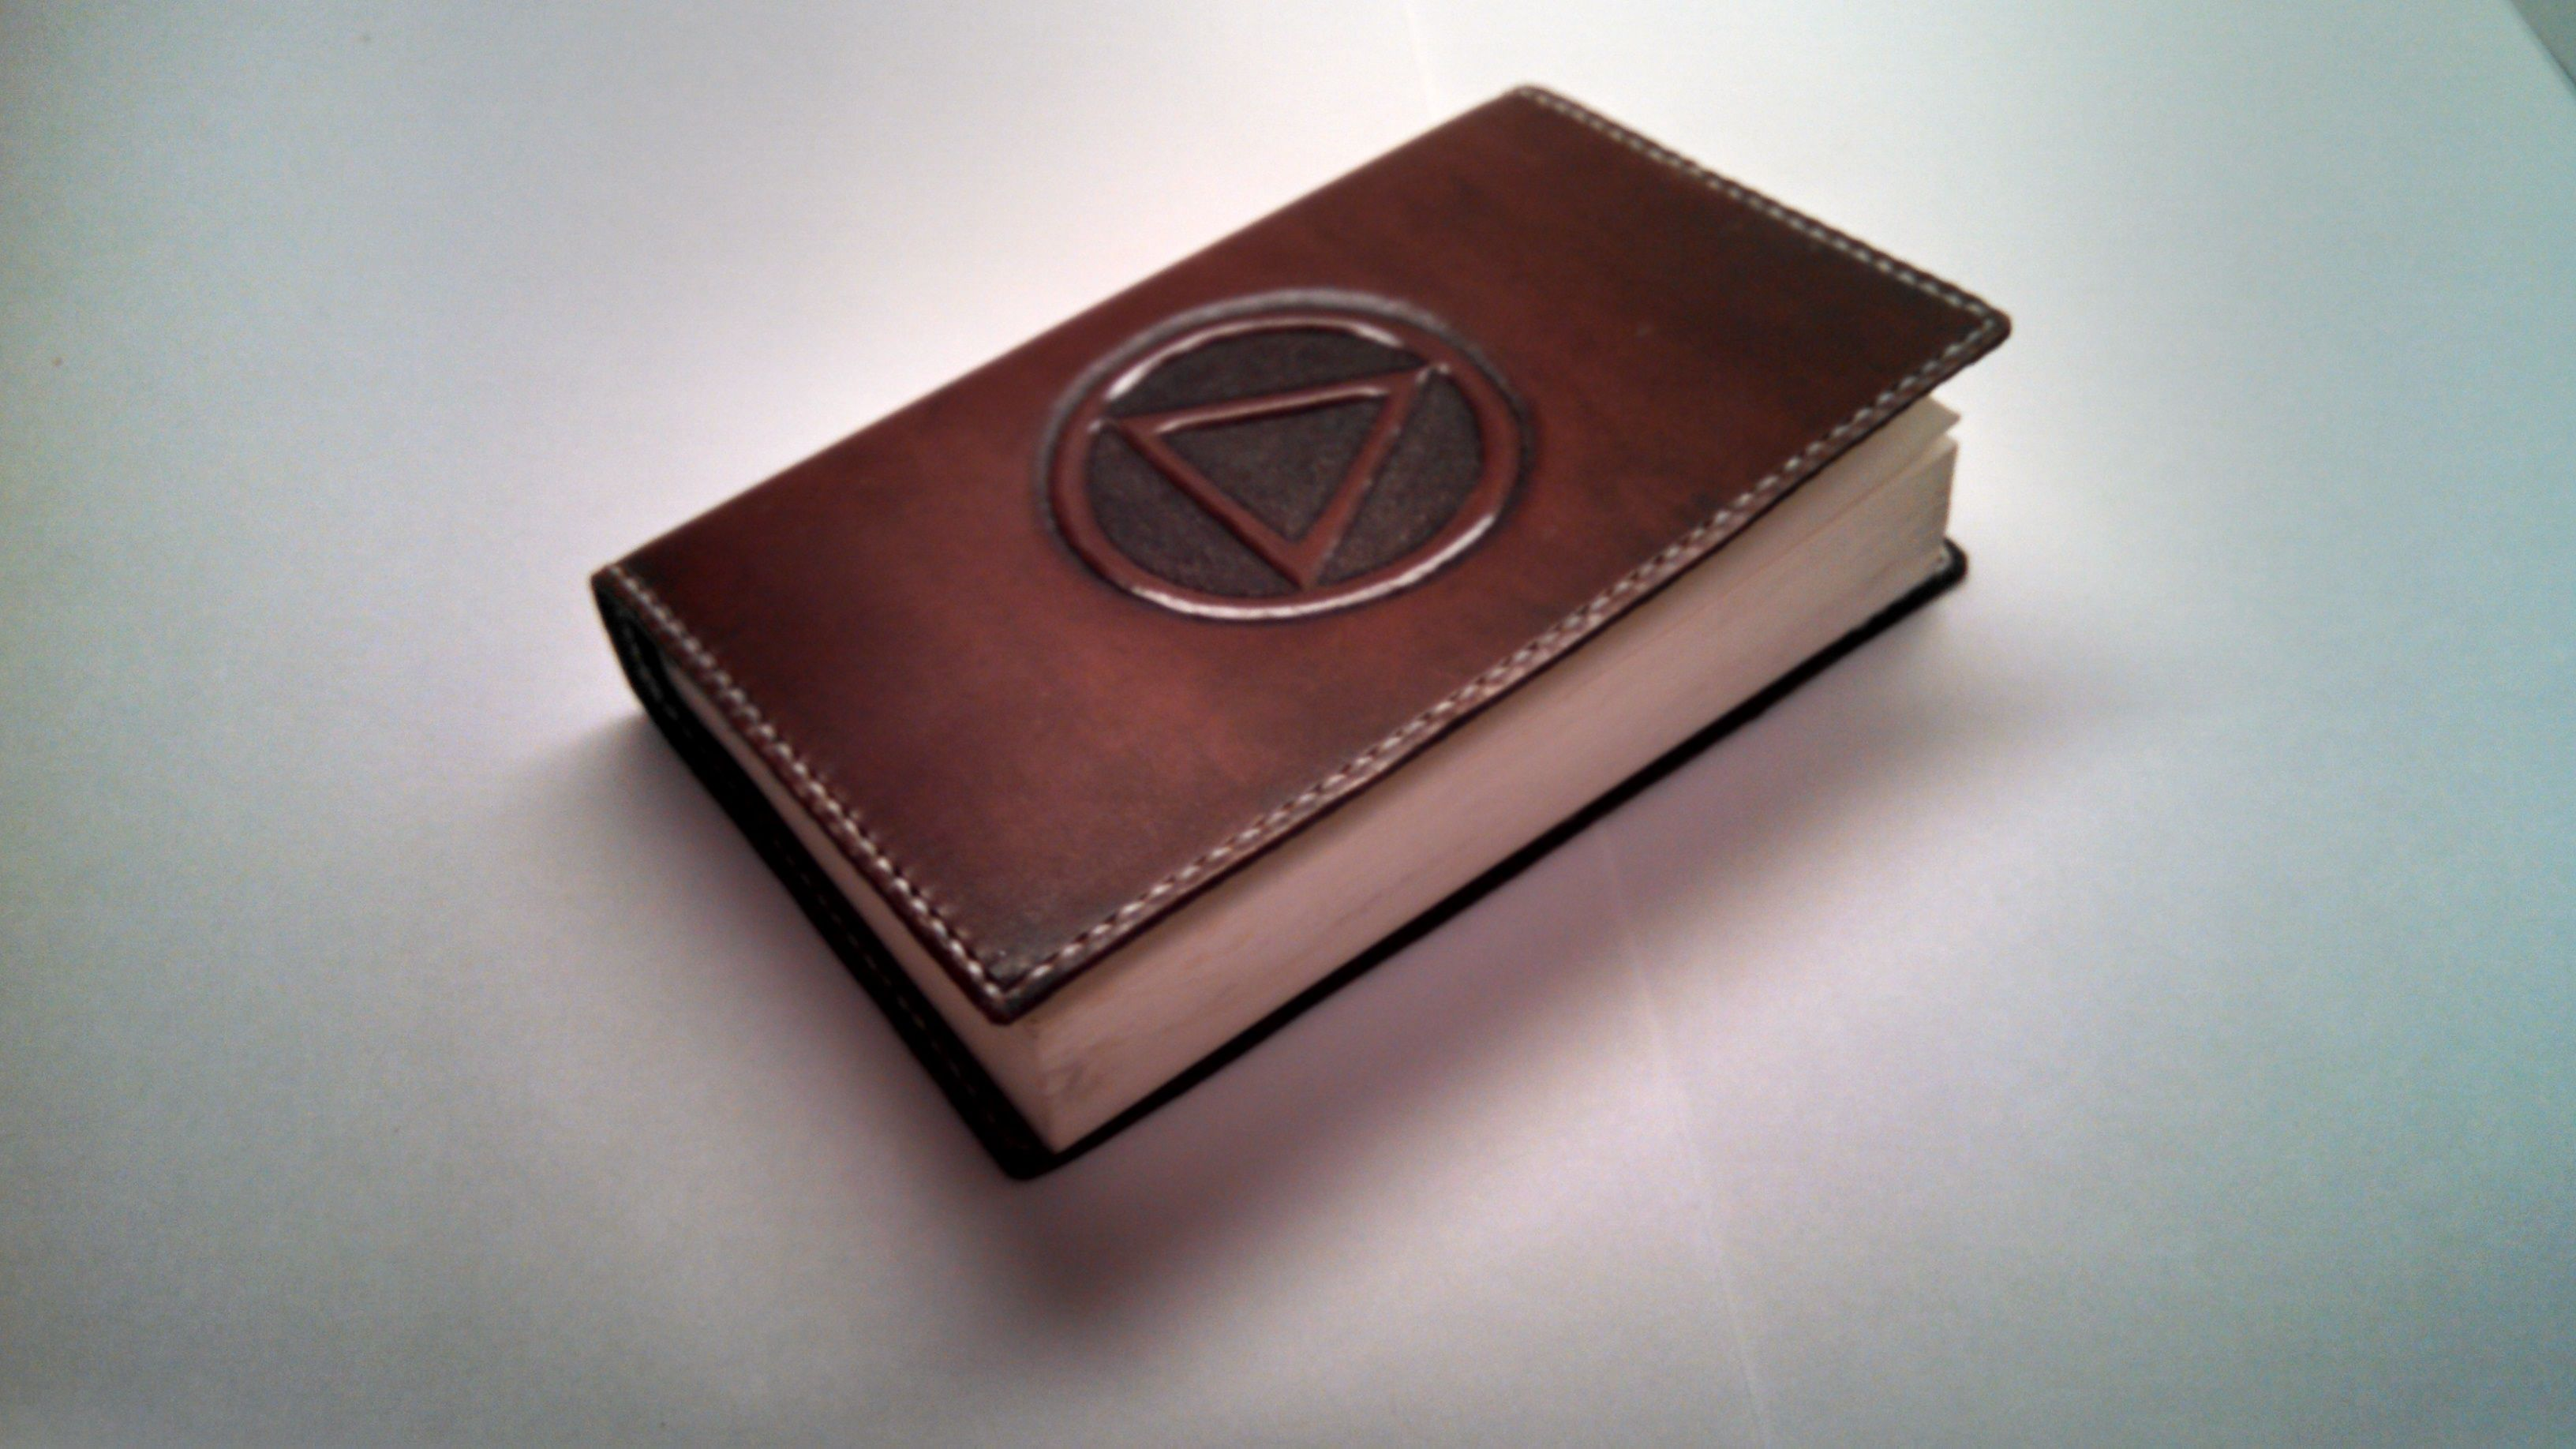 Handmade Leather Book Cover : Handmade leather book covers images